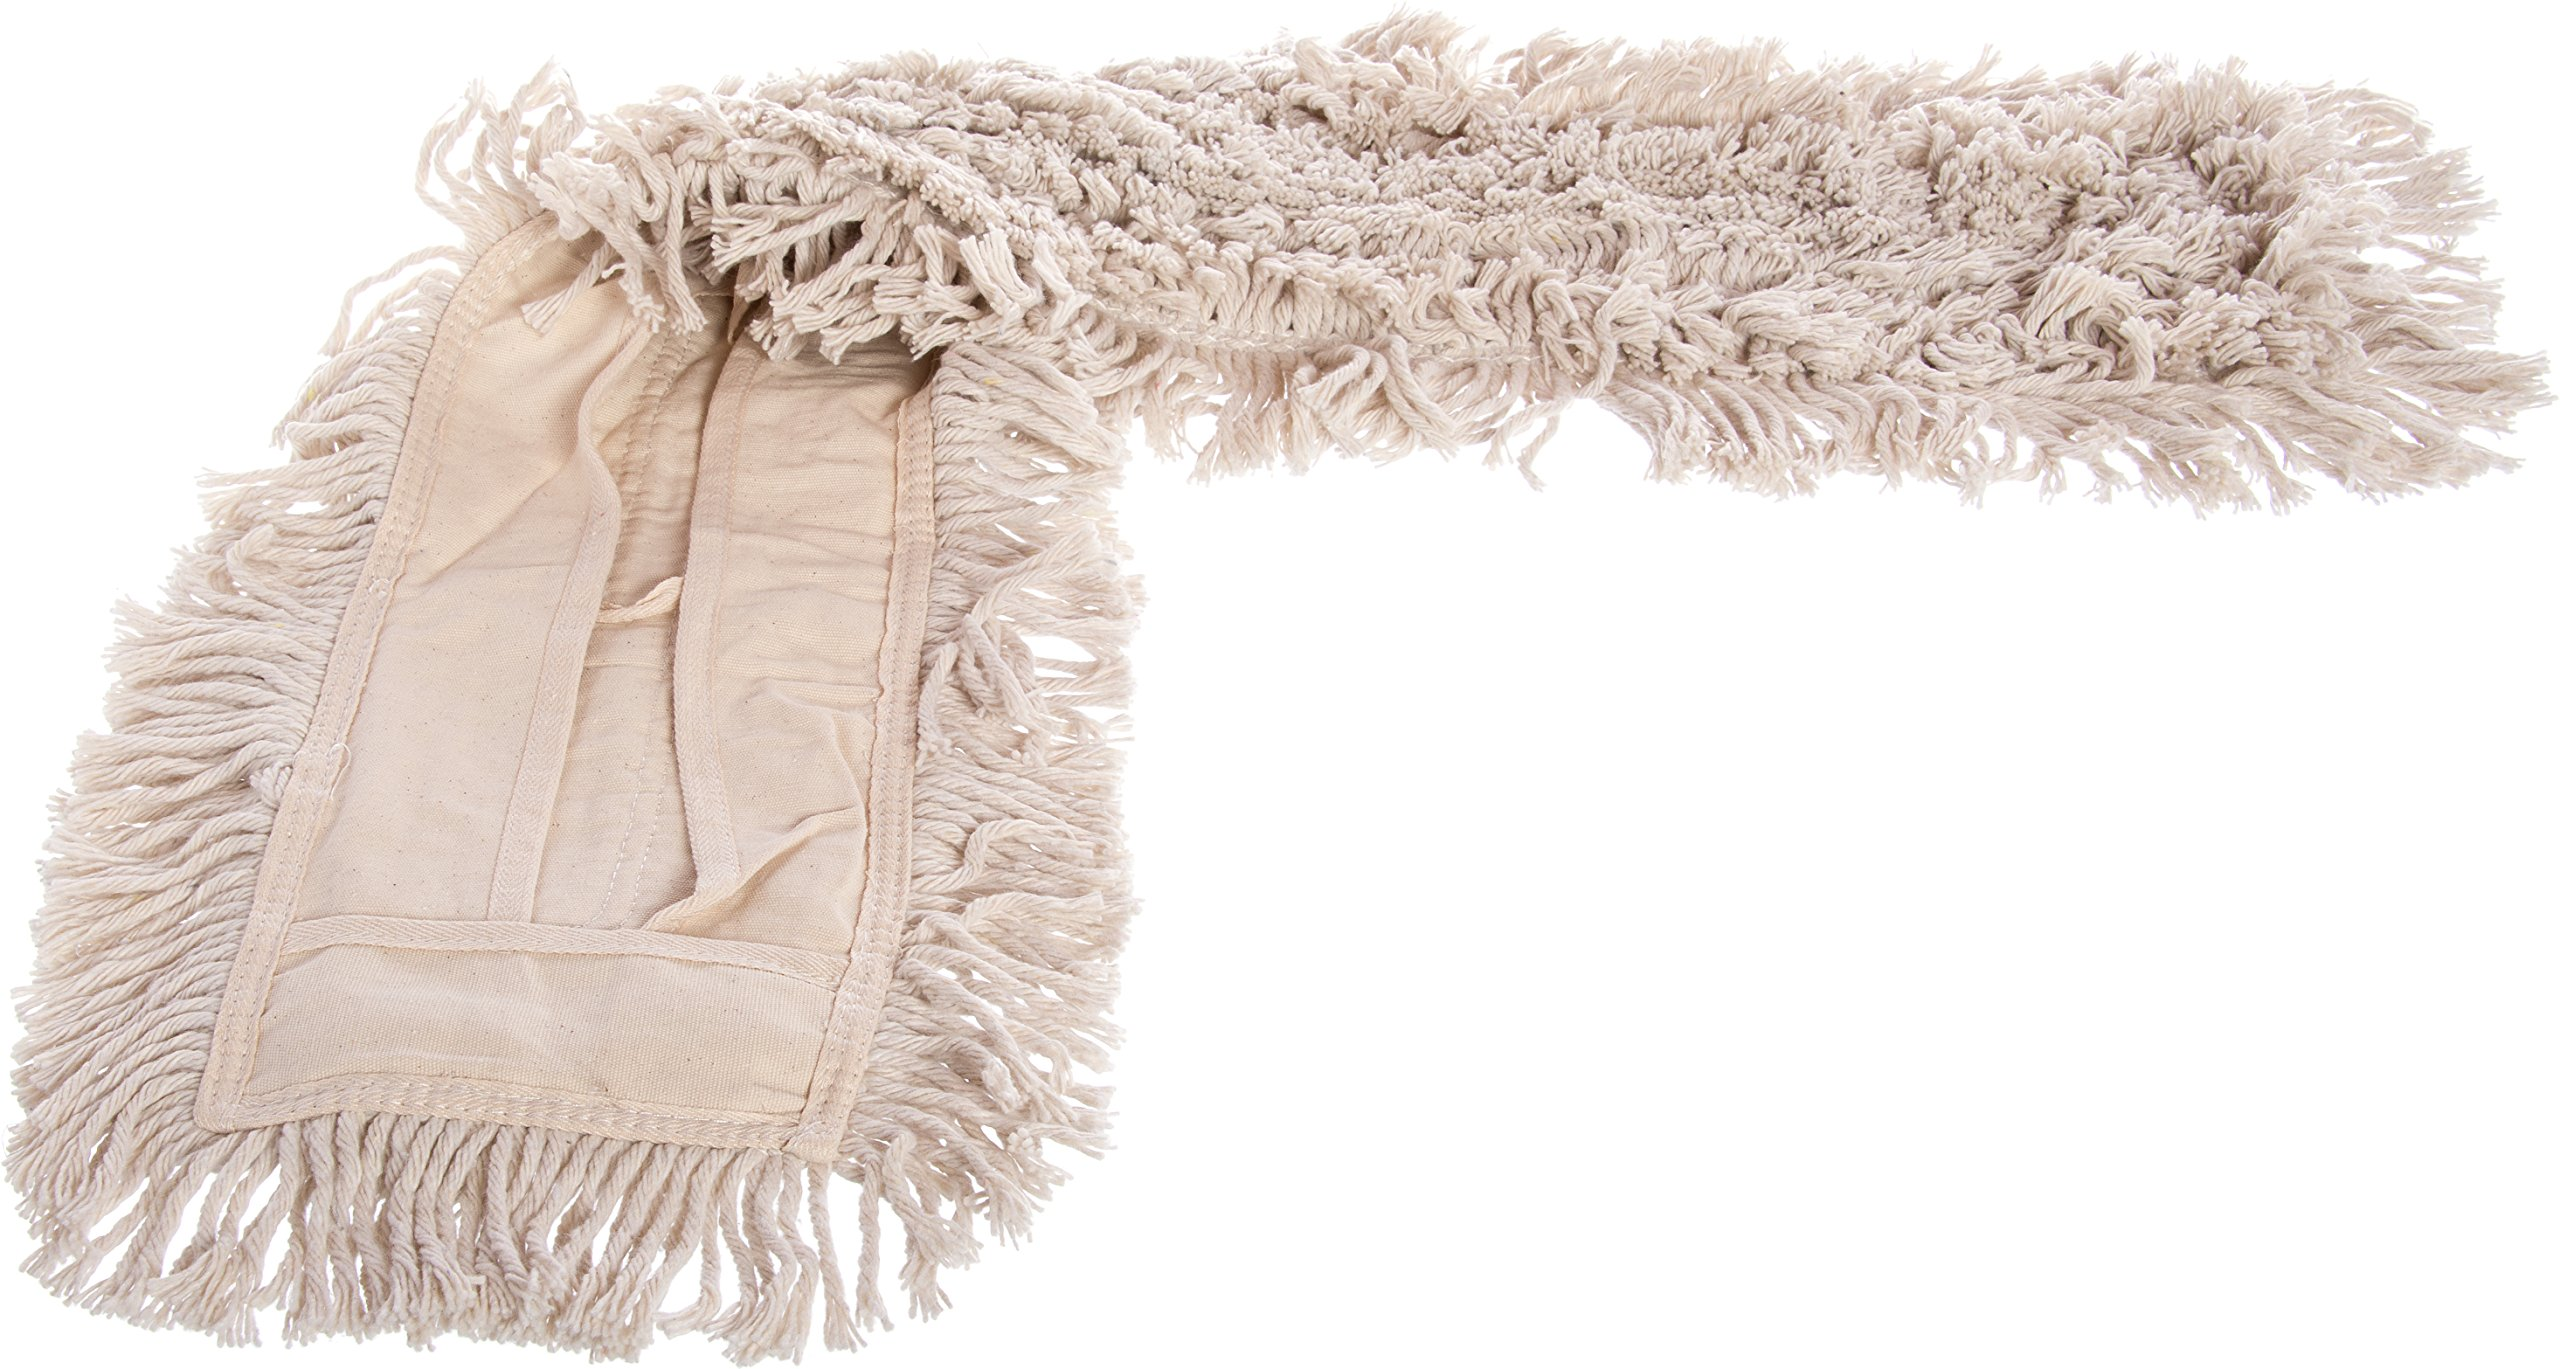 Carlisle 364753600 Flo-Pac Cotton Tie Back Dust Mop, 36'' Length x 5'' Width, Natural (Pack of 12) by Carlisle (Image #3)